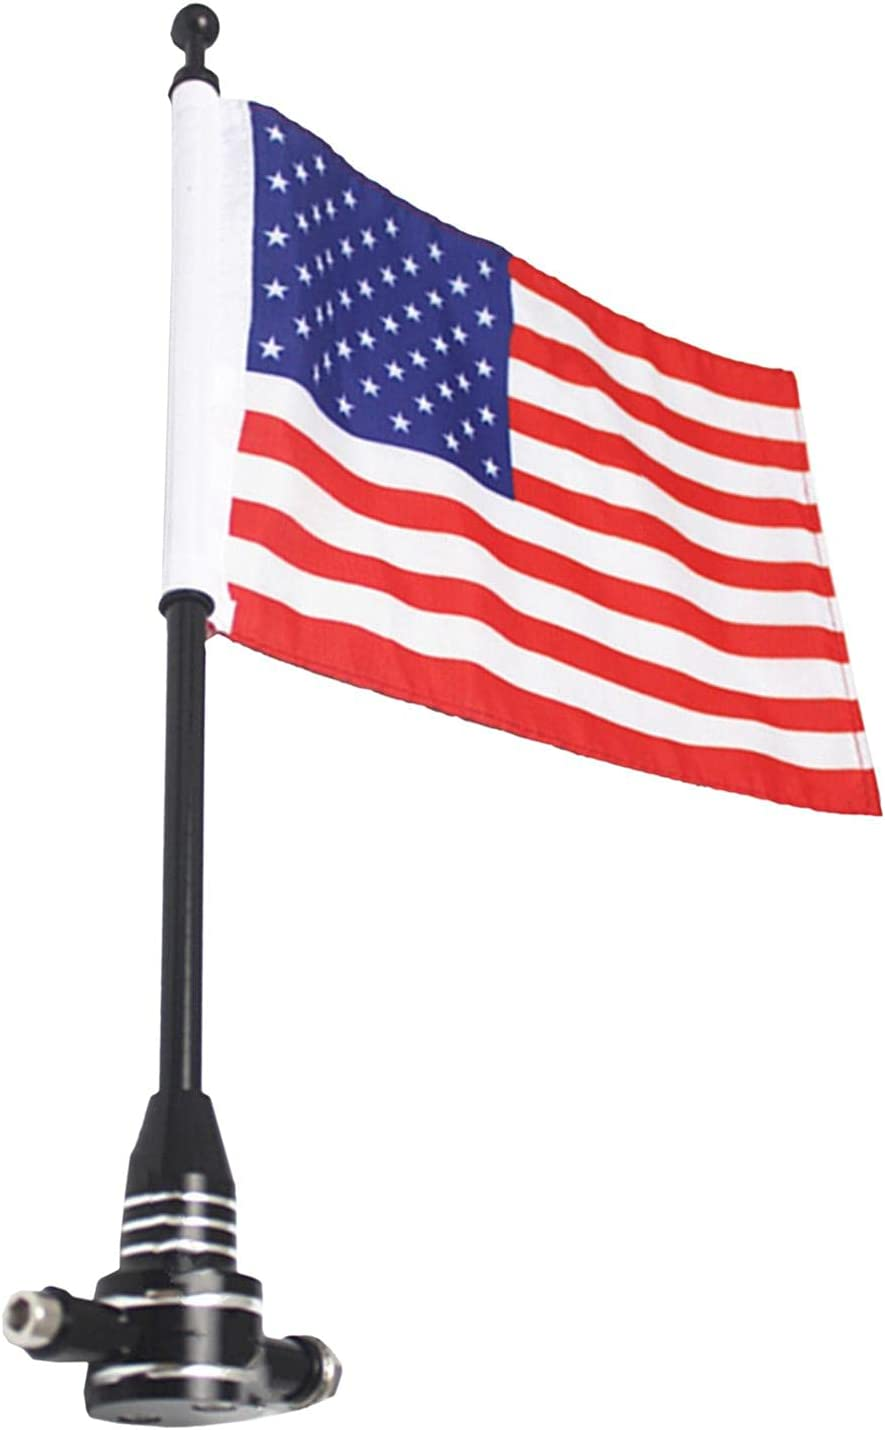 Bouilloire Motorcycle Flagpole Mount and Inventory cleanup selling Virginia Beach Mall sale American Flag Adjustabl